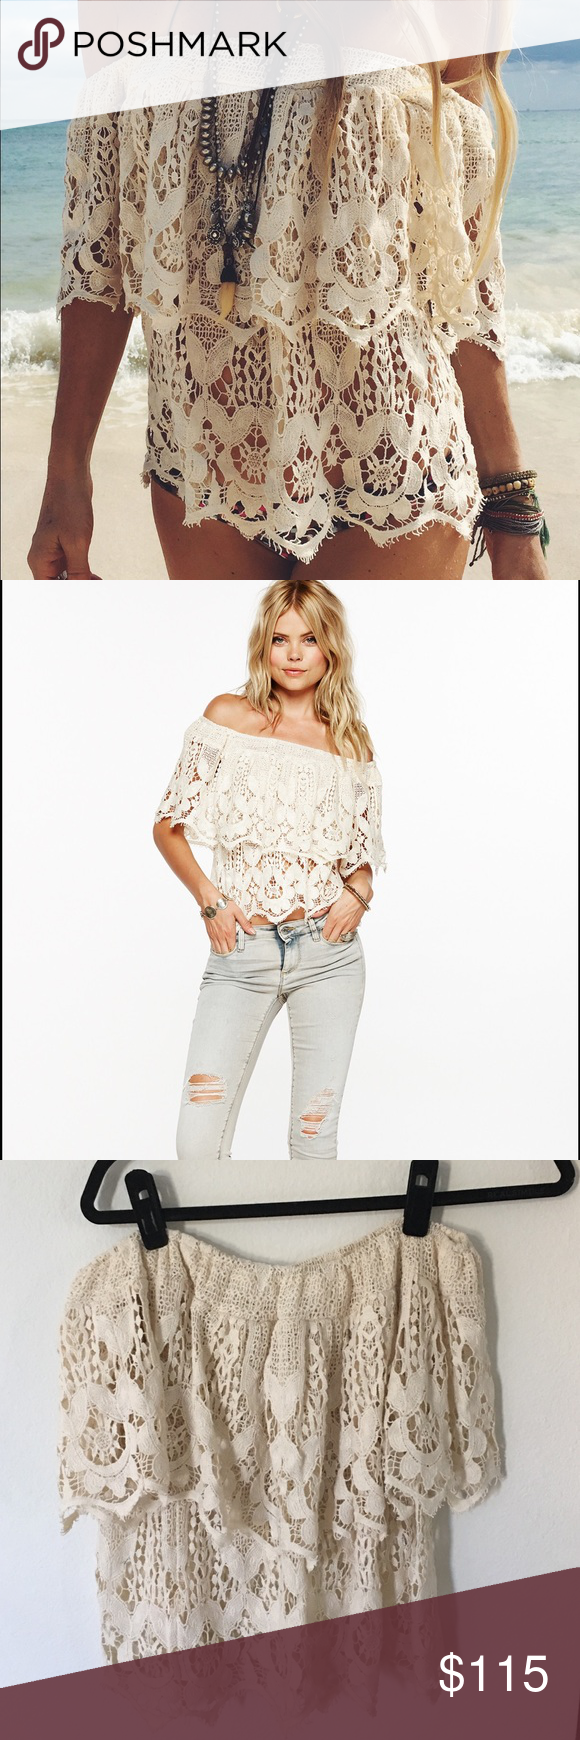 Jen's Pirate Booty Lace off the shoulder top Off the shoulder all over lace top. See through. Jen's Pirate Booty Tops Blouses